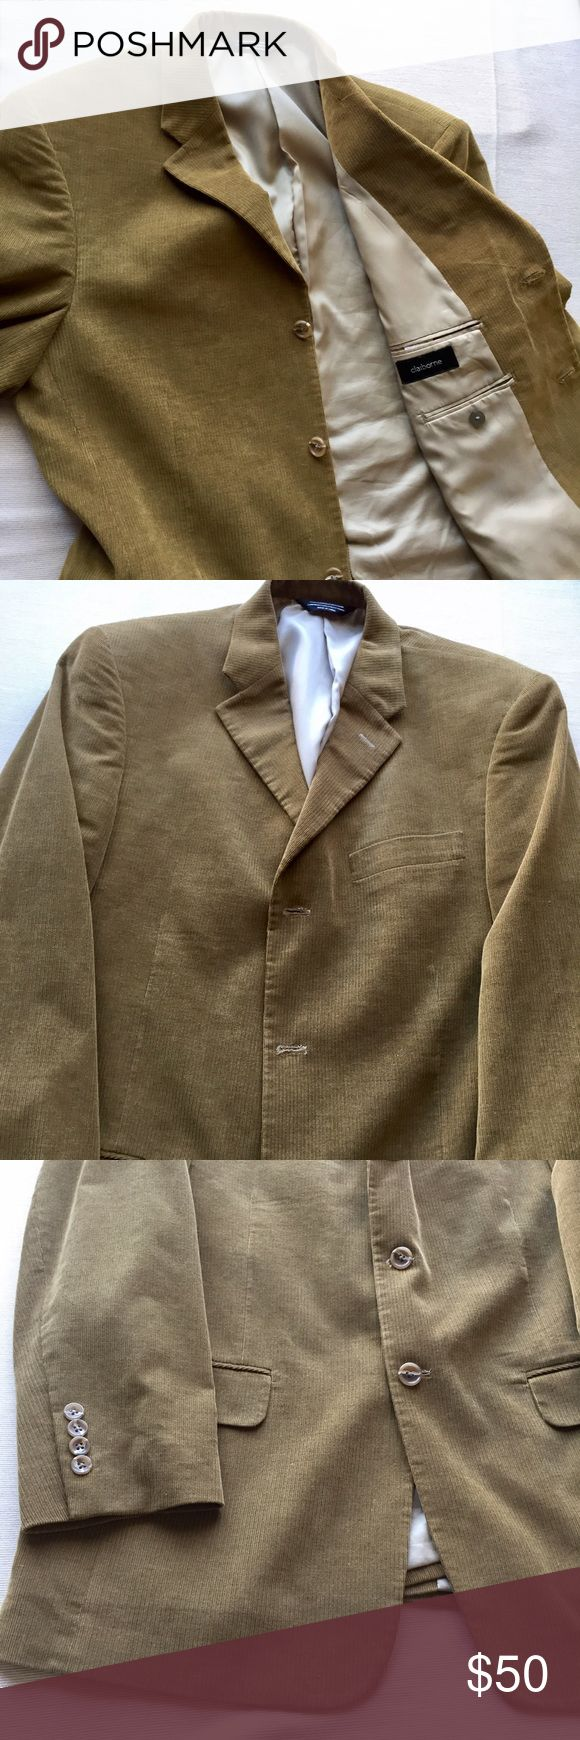 Claiborne corduroy blazer- 40 regular Men's Claiborne corduroy blazer in great condition. Great color as well. Size 40 regular. Please feel free to ask questions. Claiborne Suits & Blazers Sport Coats & Blazers